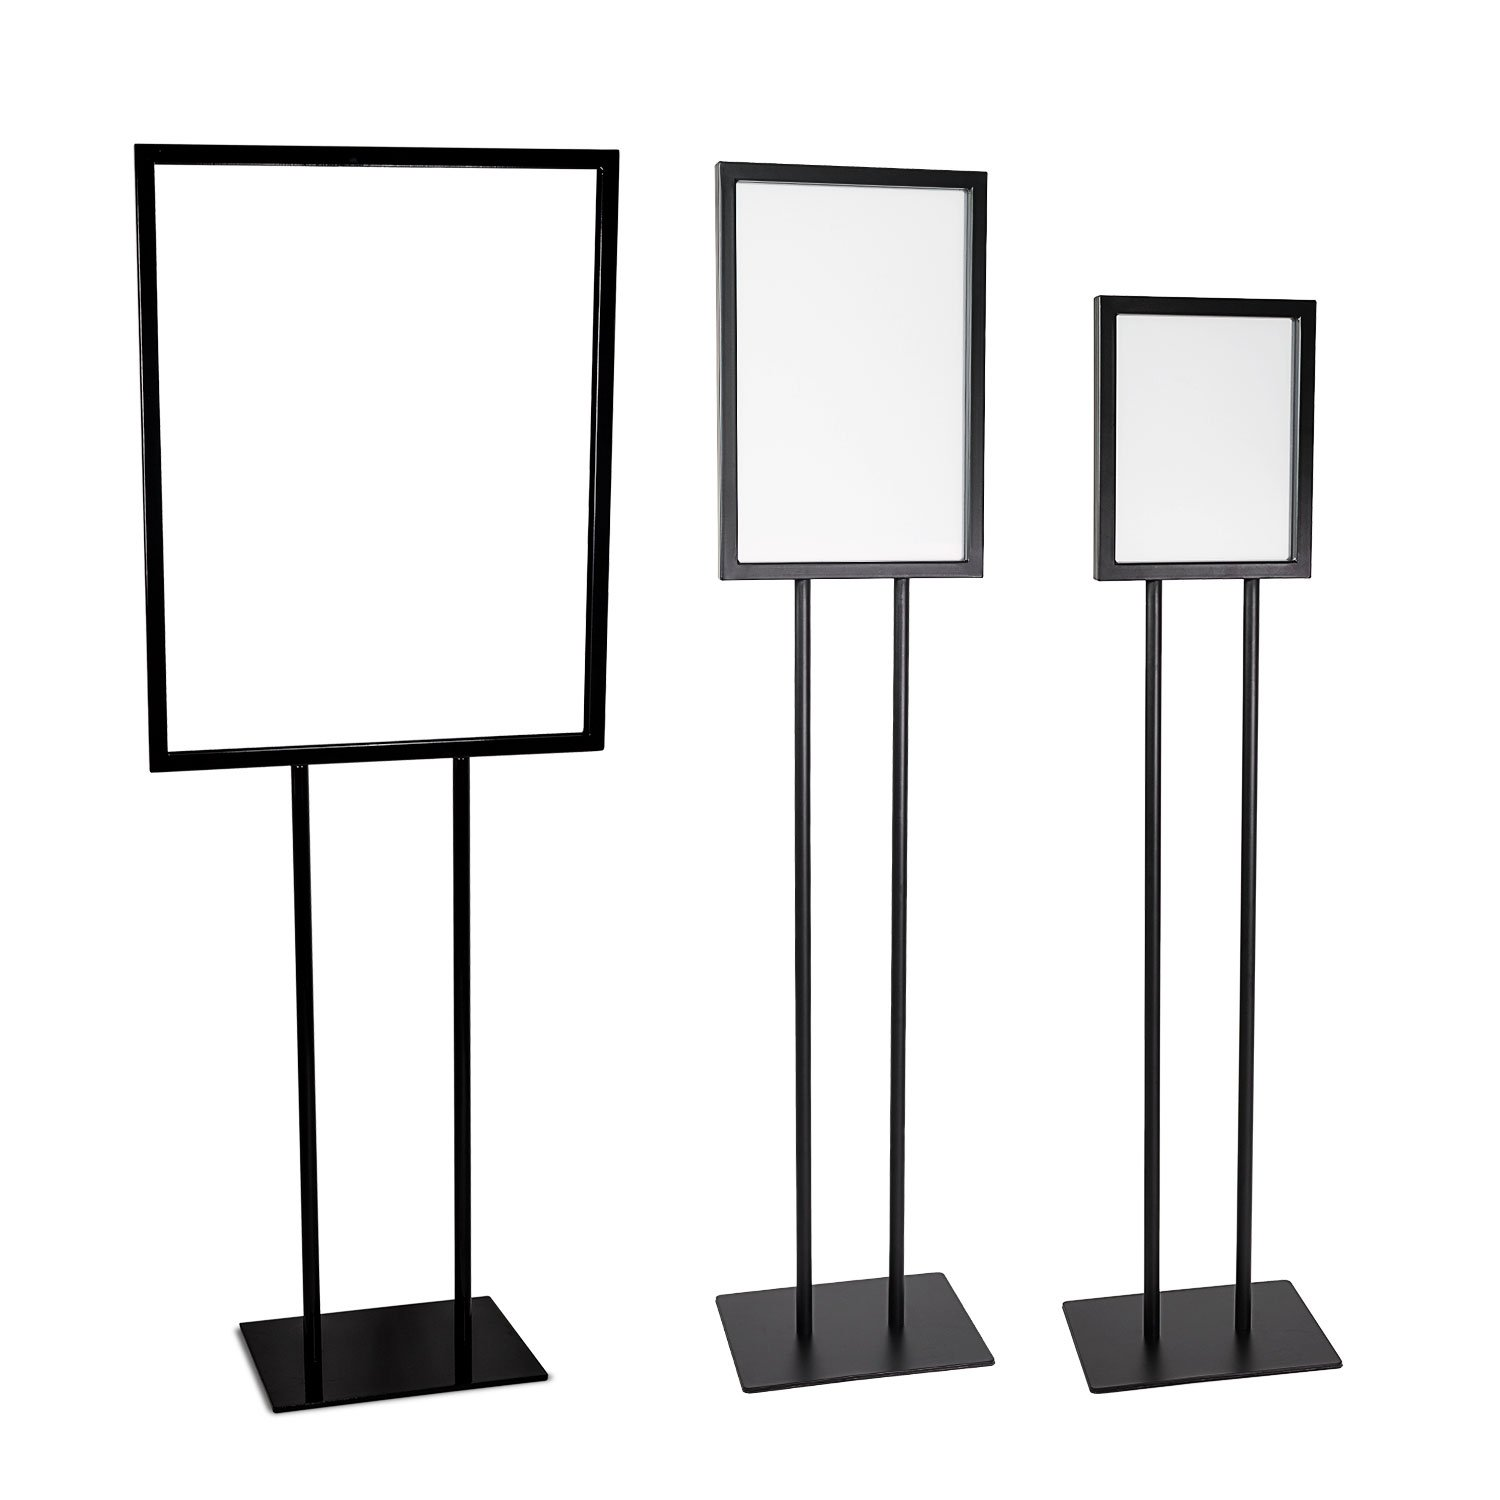 Source One Deluxe 22 x 28, 11 x 17, 8 1/2 x 11 Inch Floor Standing Sign Holders Multiple Colors Black, White & Gray Heavy Duty Weighted Metal (22 x 28 Inch, Black)